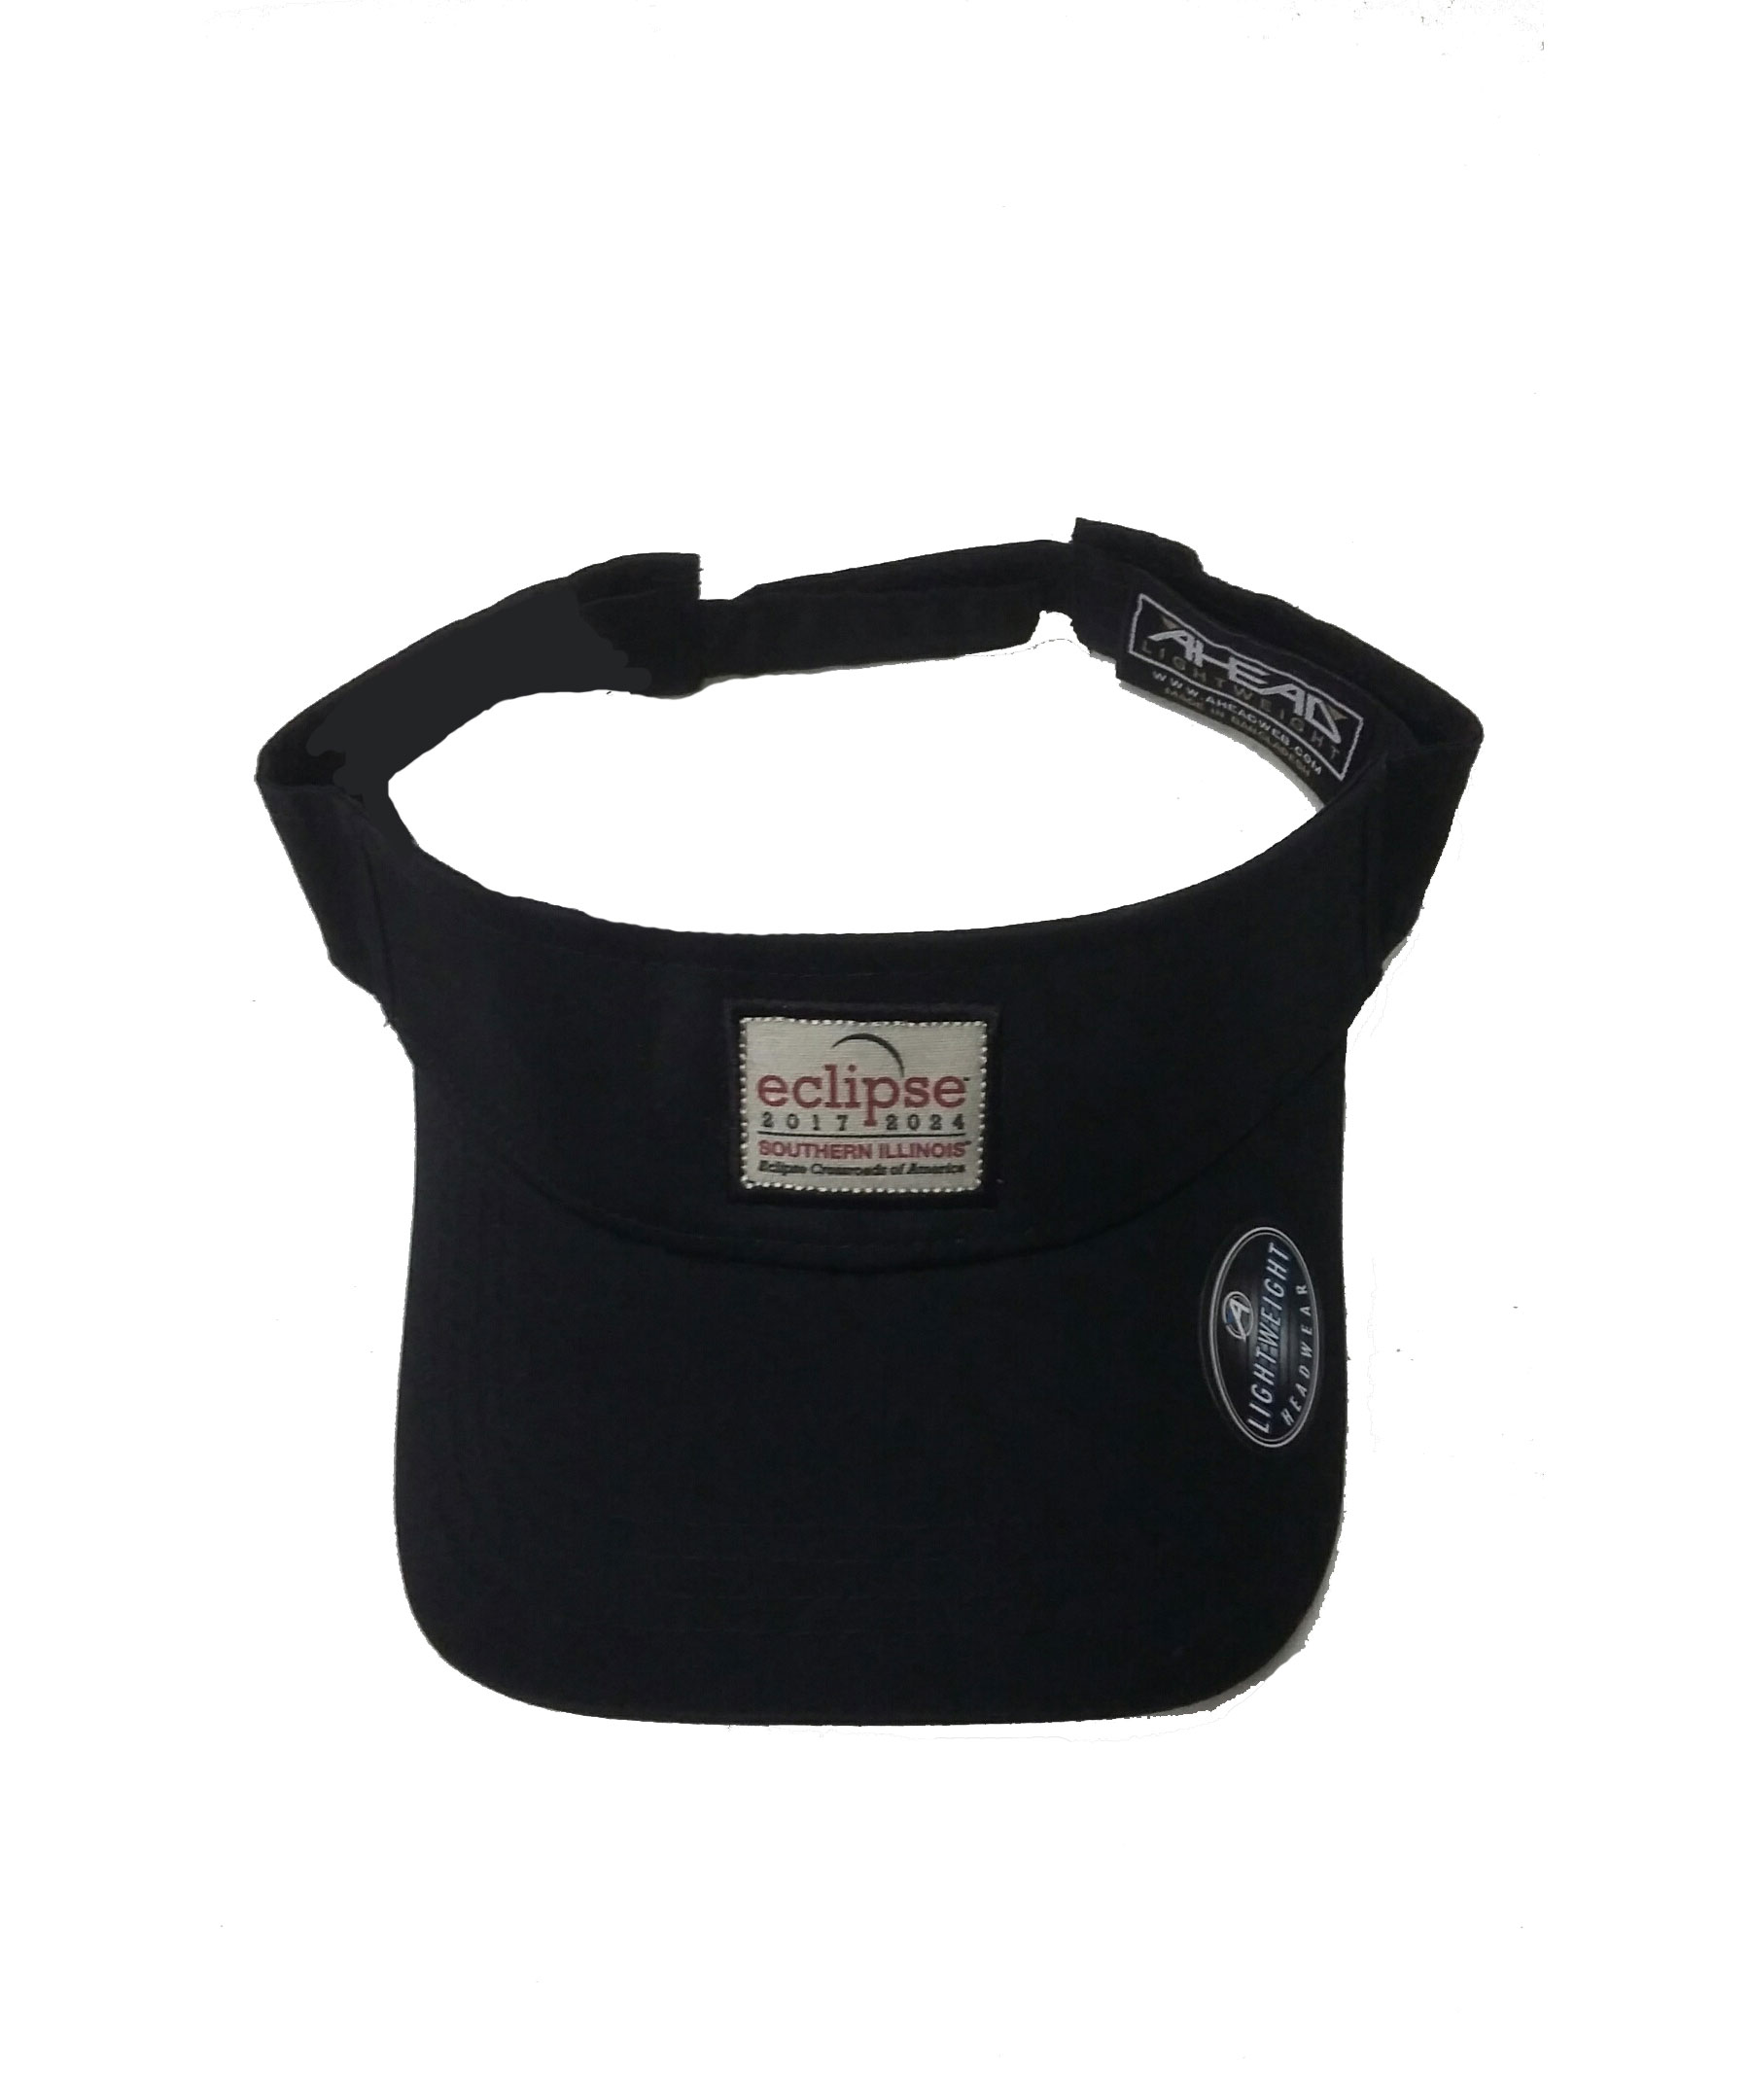 "Image for the ECLIPSE ""NO SUN"" LIGHTWEIGHT TWILL LOW RISE VISOR product"